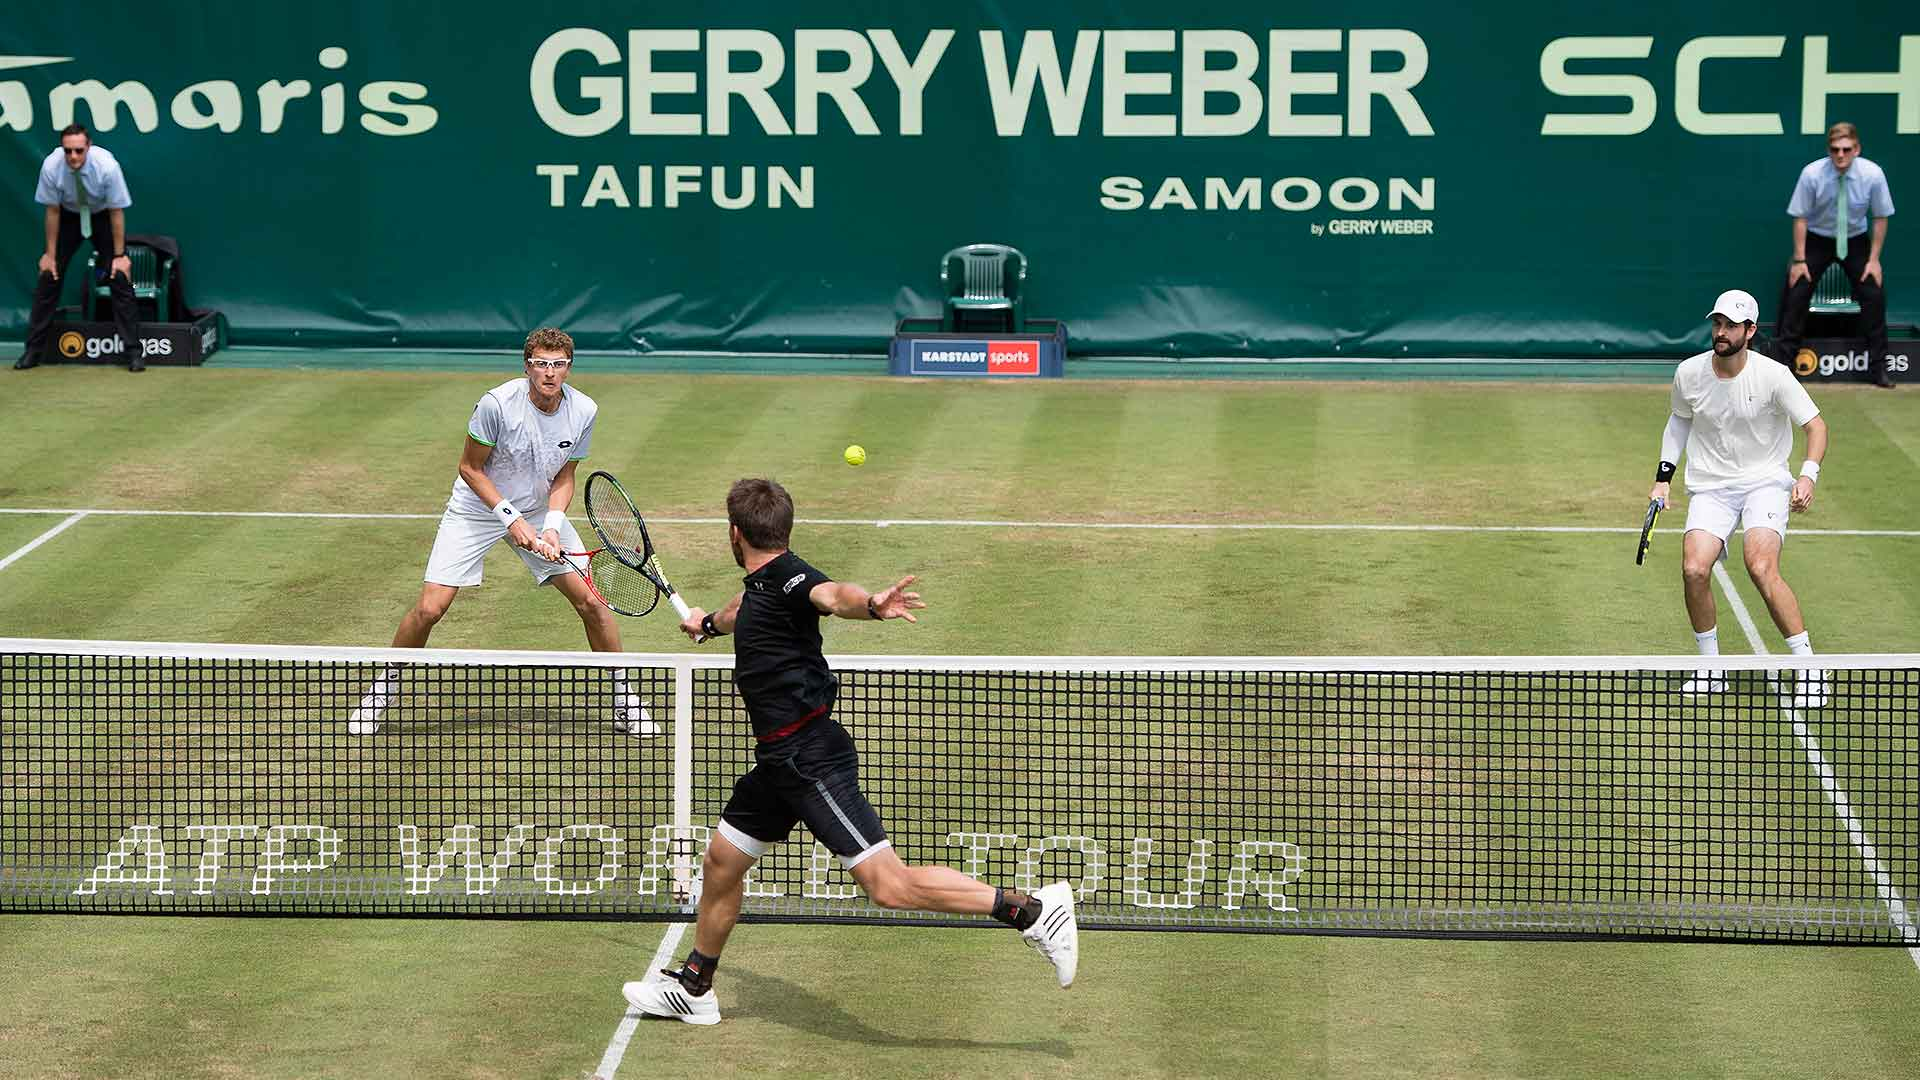 Alexander Peya puts a volley away en route to a win in Halle.